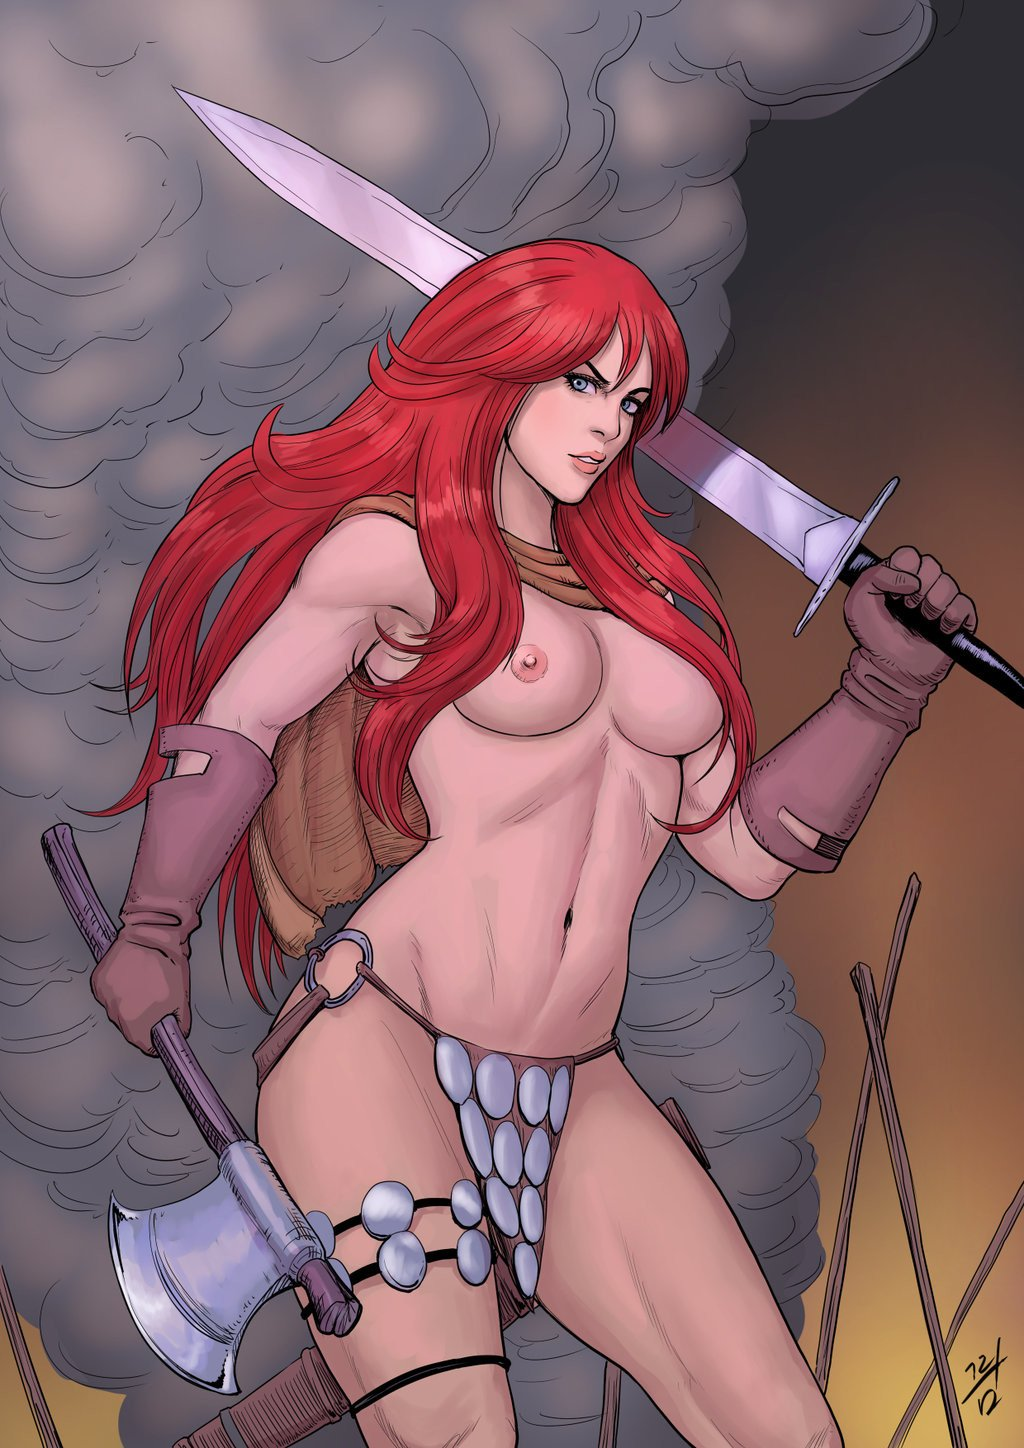 Sword and sorcery porn